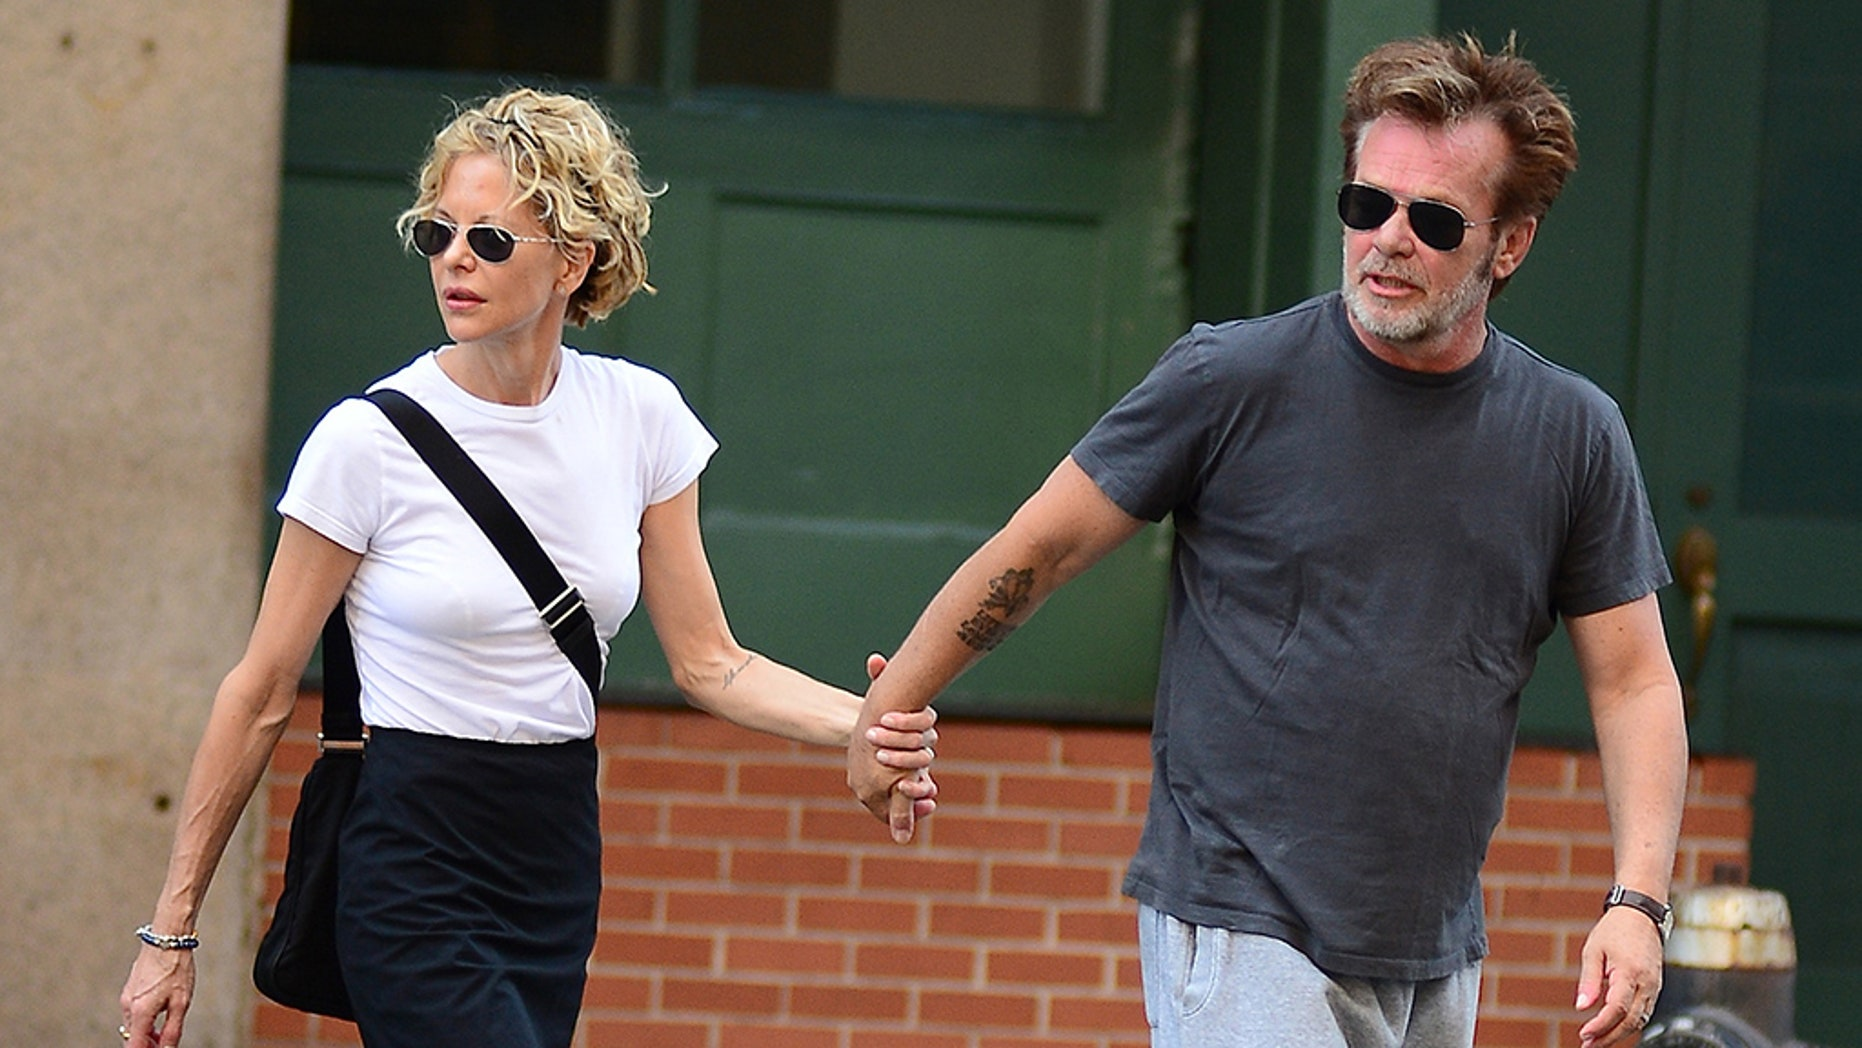 Meg Ryan, John Mellencamp are engaged, Entertainment News & Top Stories